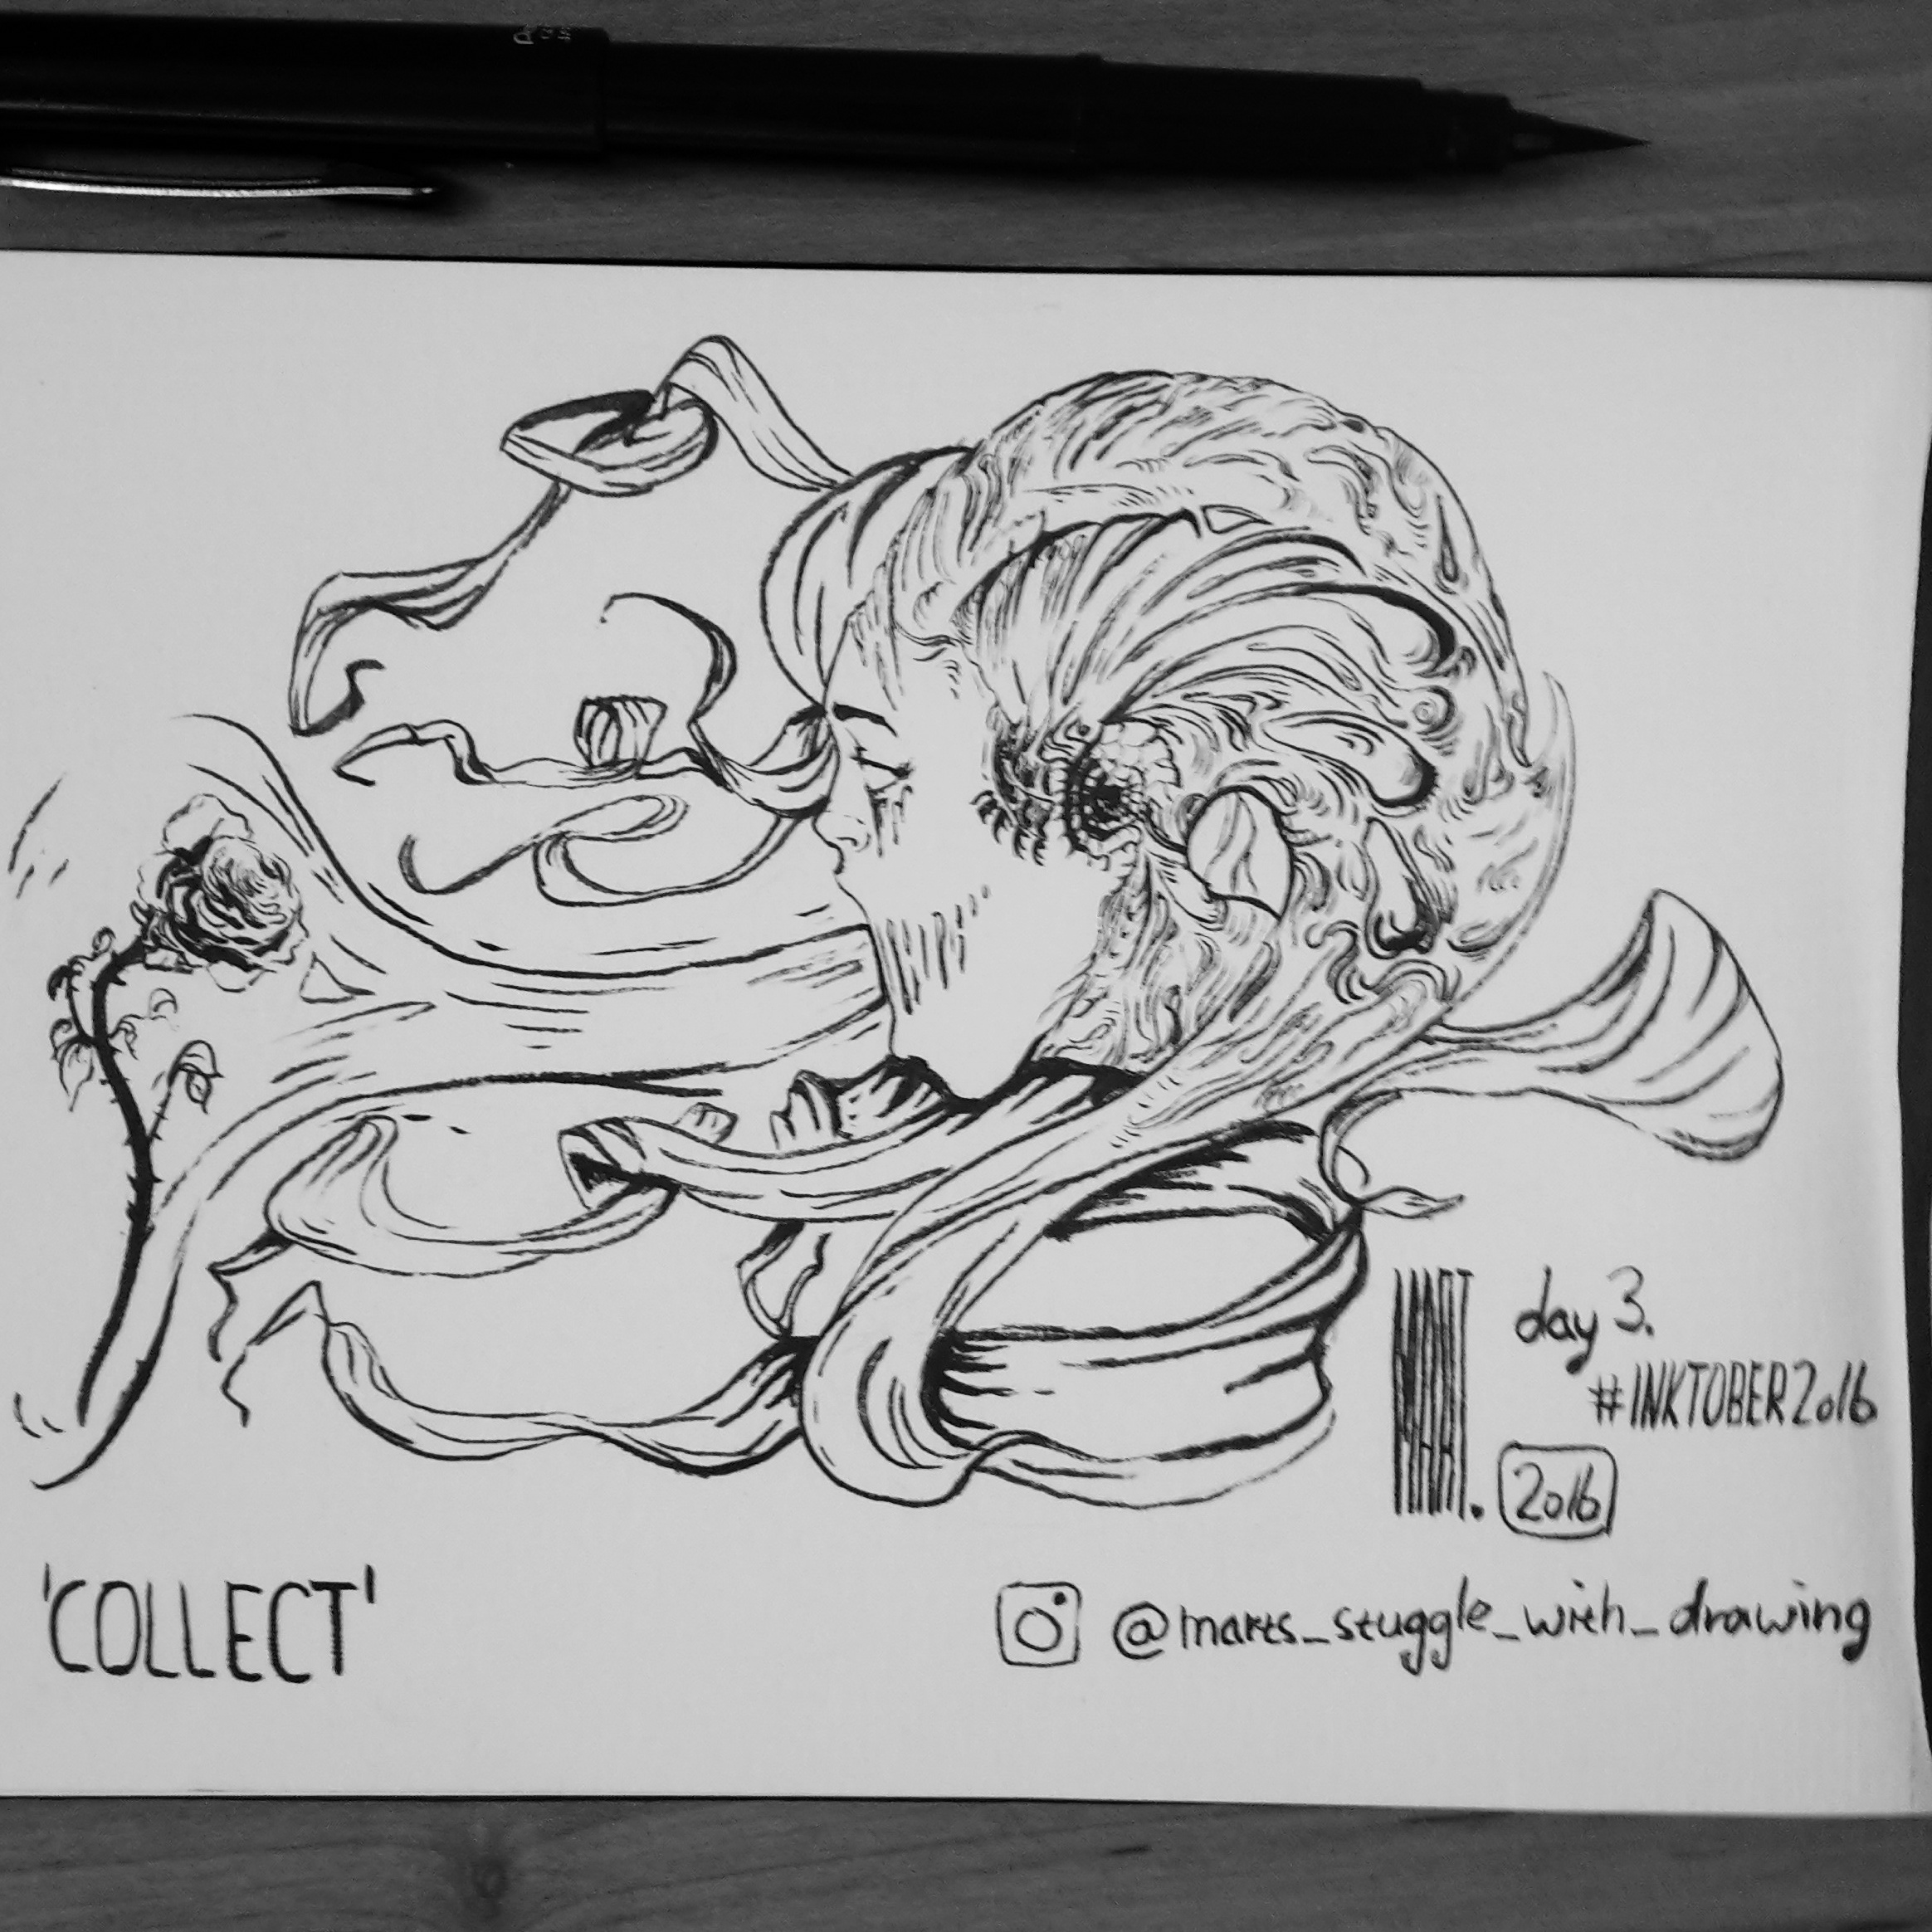 Inktober 2016 day 3 'COLLECT'